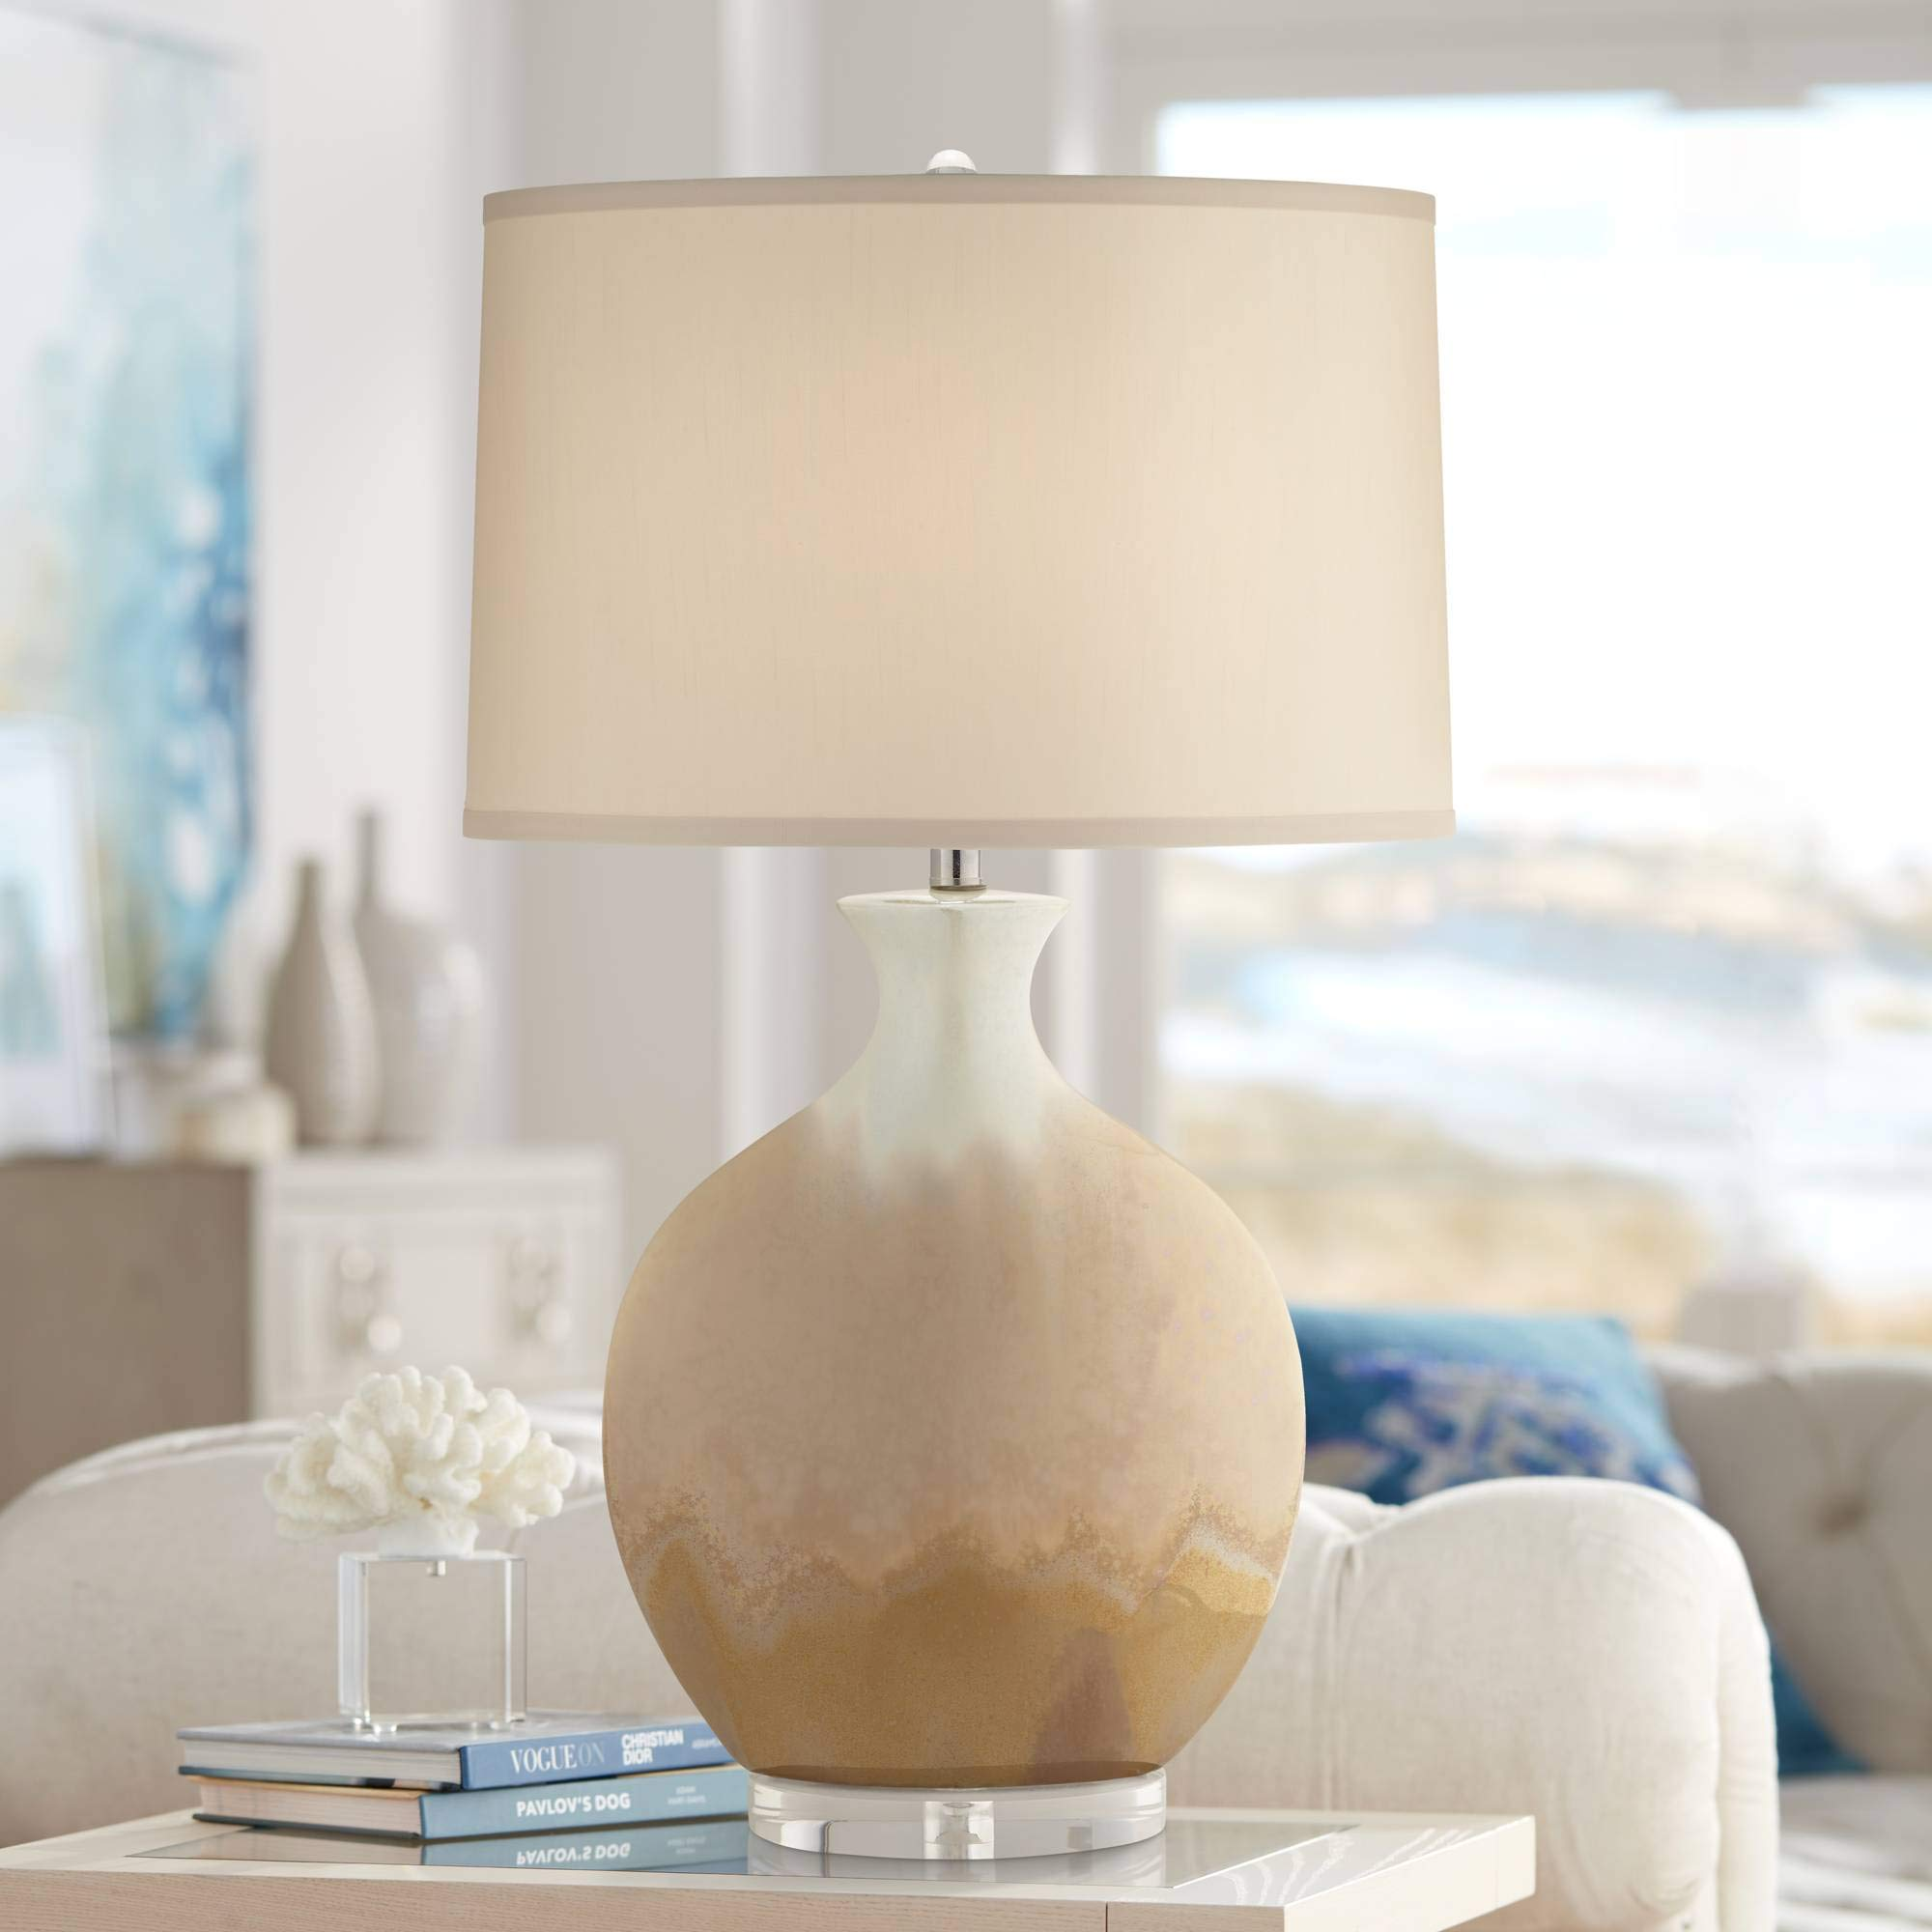 Marci Modern Contemporary Table Lamp Ceramic Porcelain Ivory Drip Glaze Off White Oval Shade Decor for Living Room Bedroom House Bedside Nightstand Home Office Entryway Family - Possini Euro Design